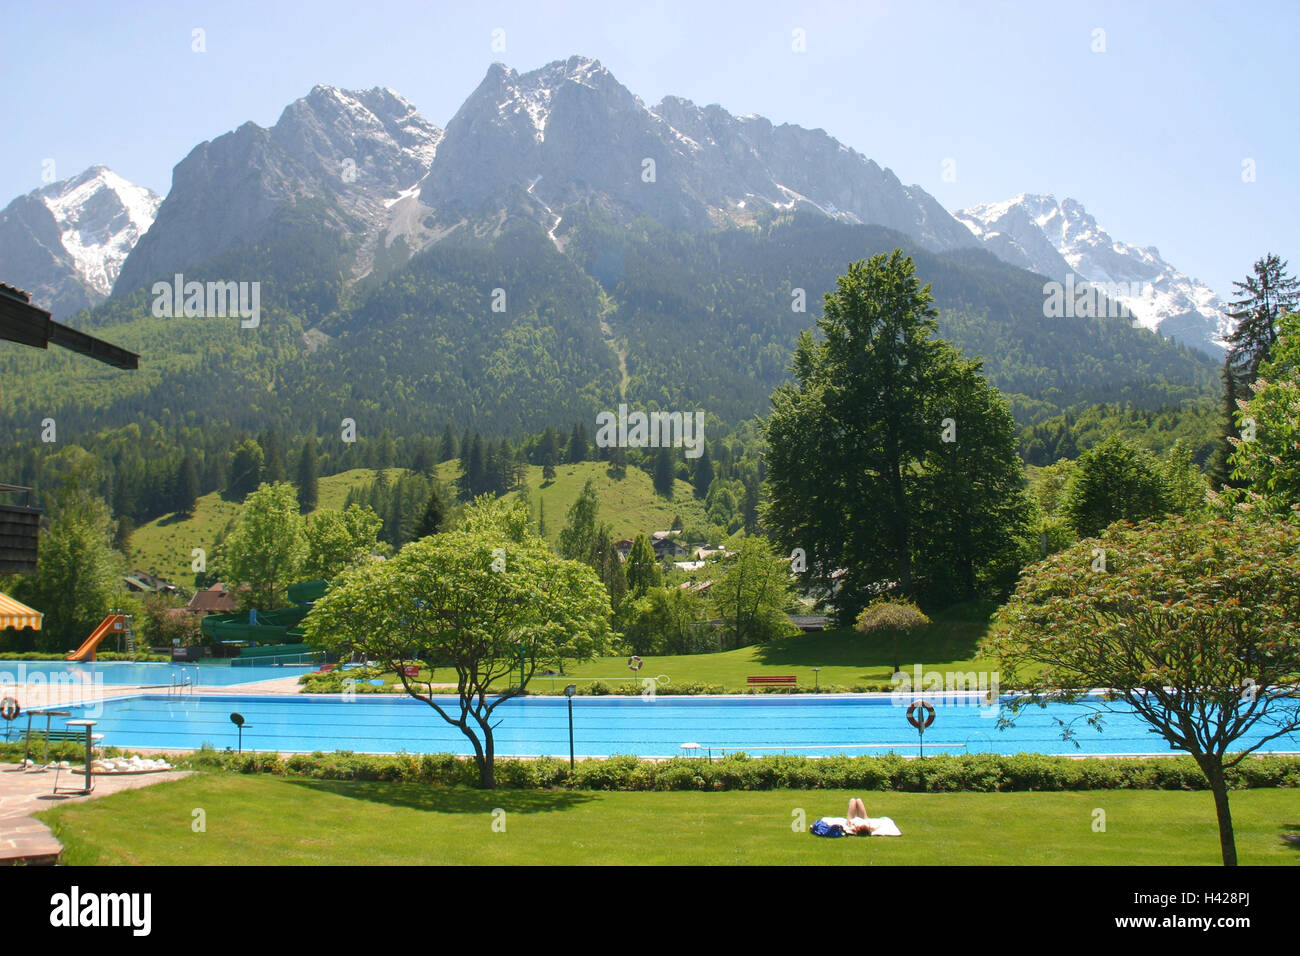 Zwembad Oberhausen Outdoor Pool Germany Stock Photos And Outdoor Pool Germany